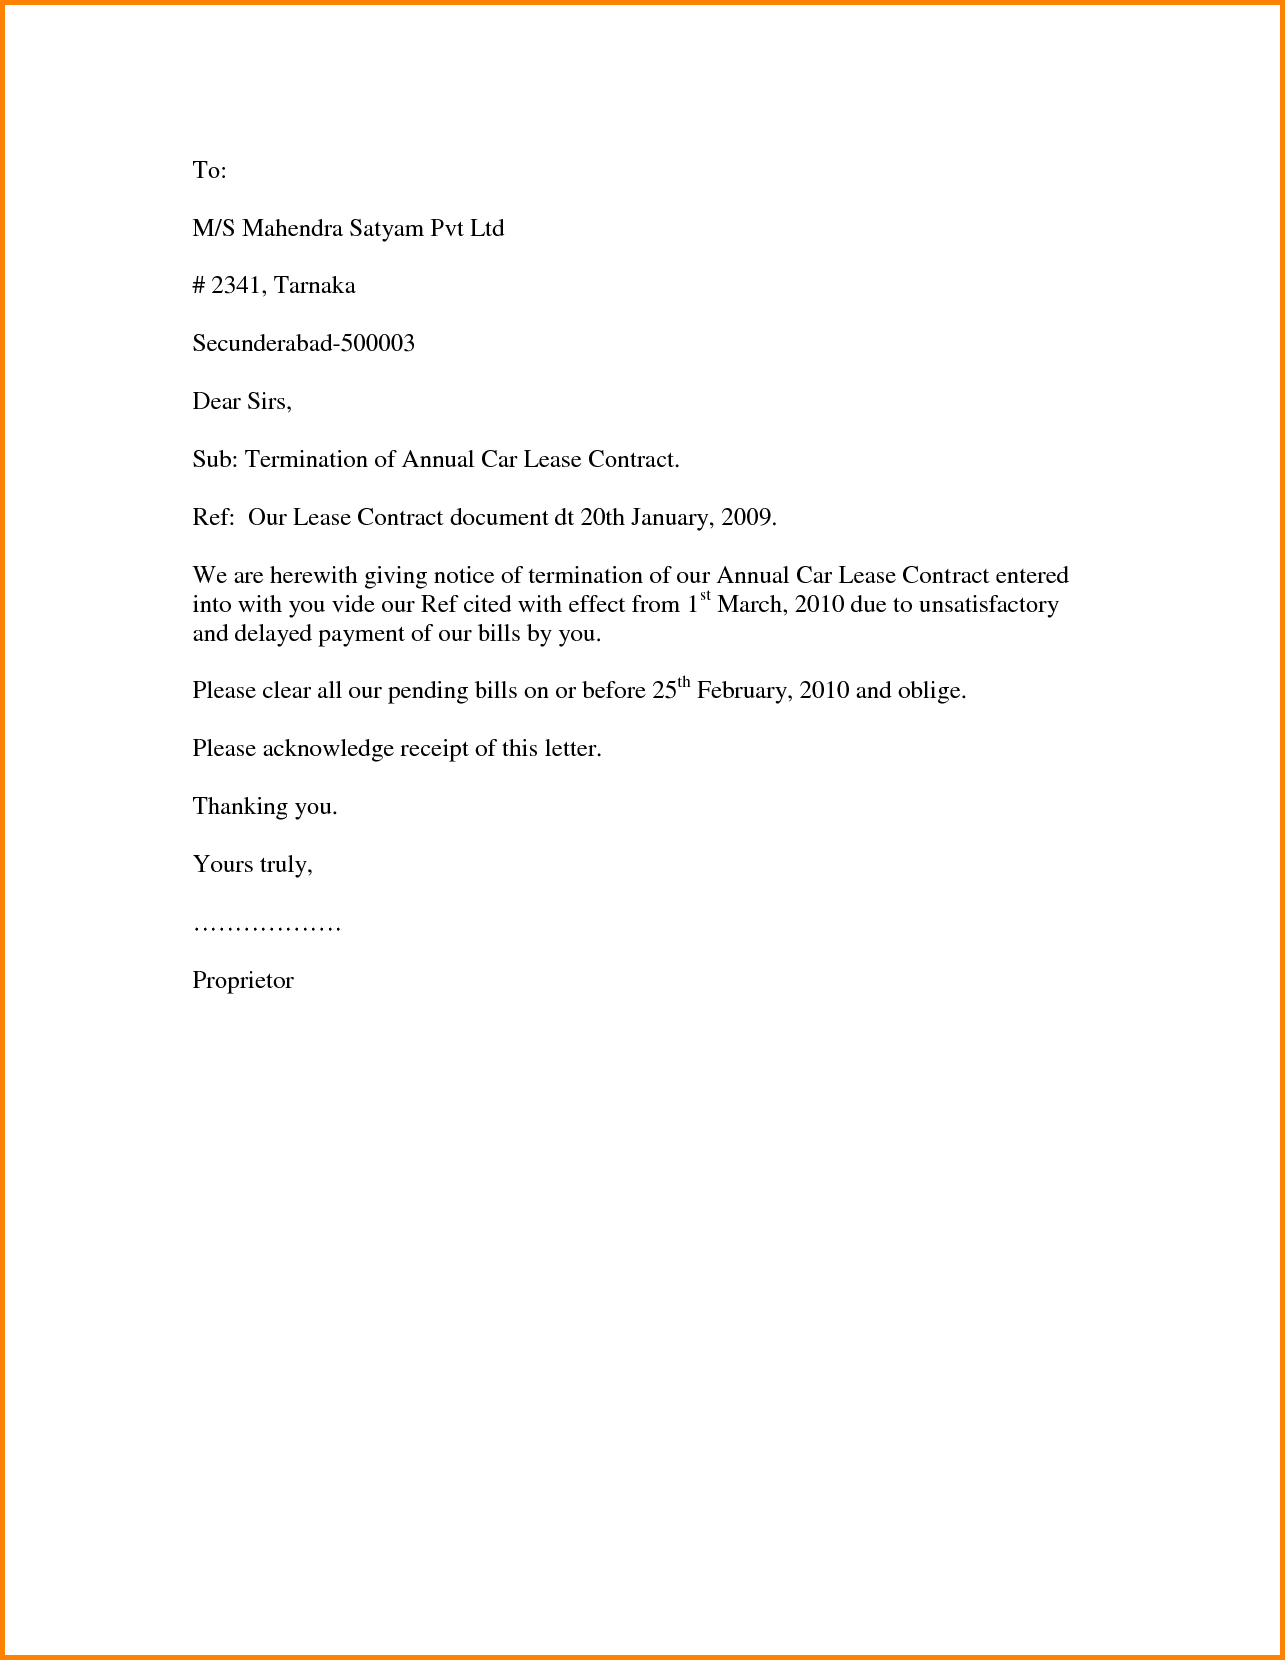 rent letter template Collection-Letter Template To End A Contract Copy Contract Letter Work Sample 6-d